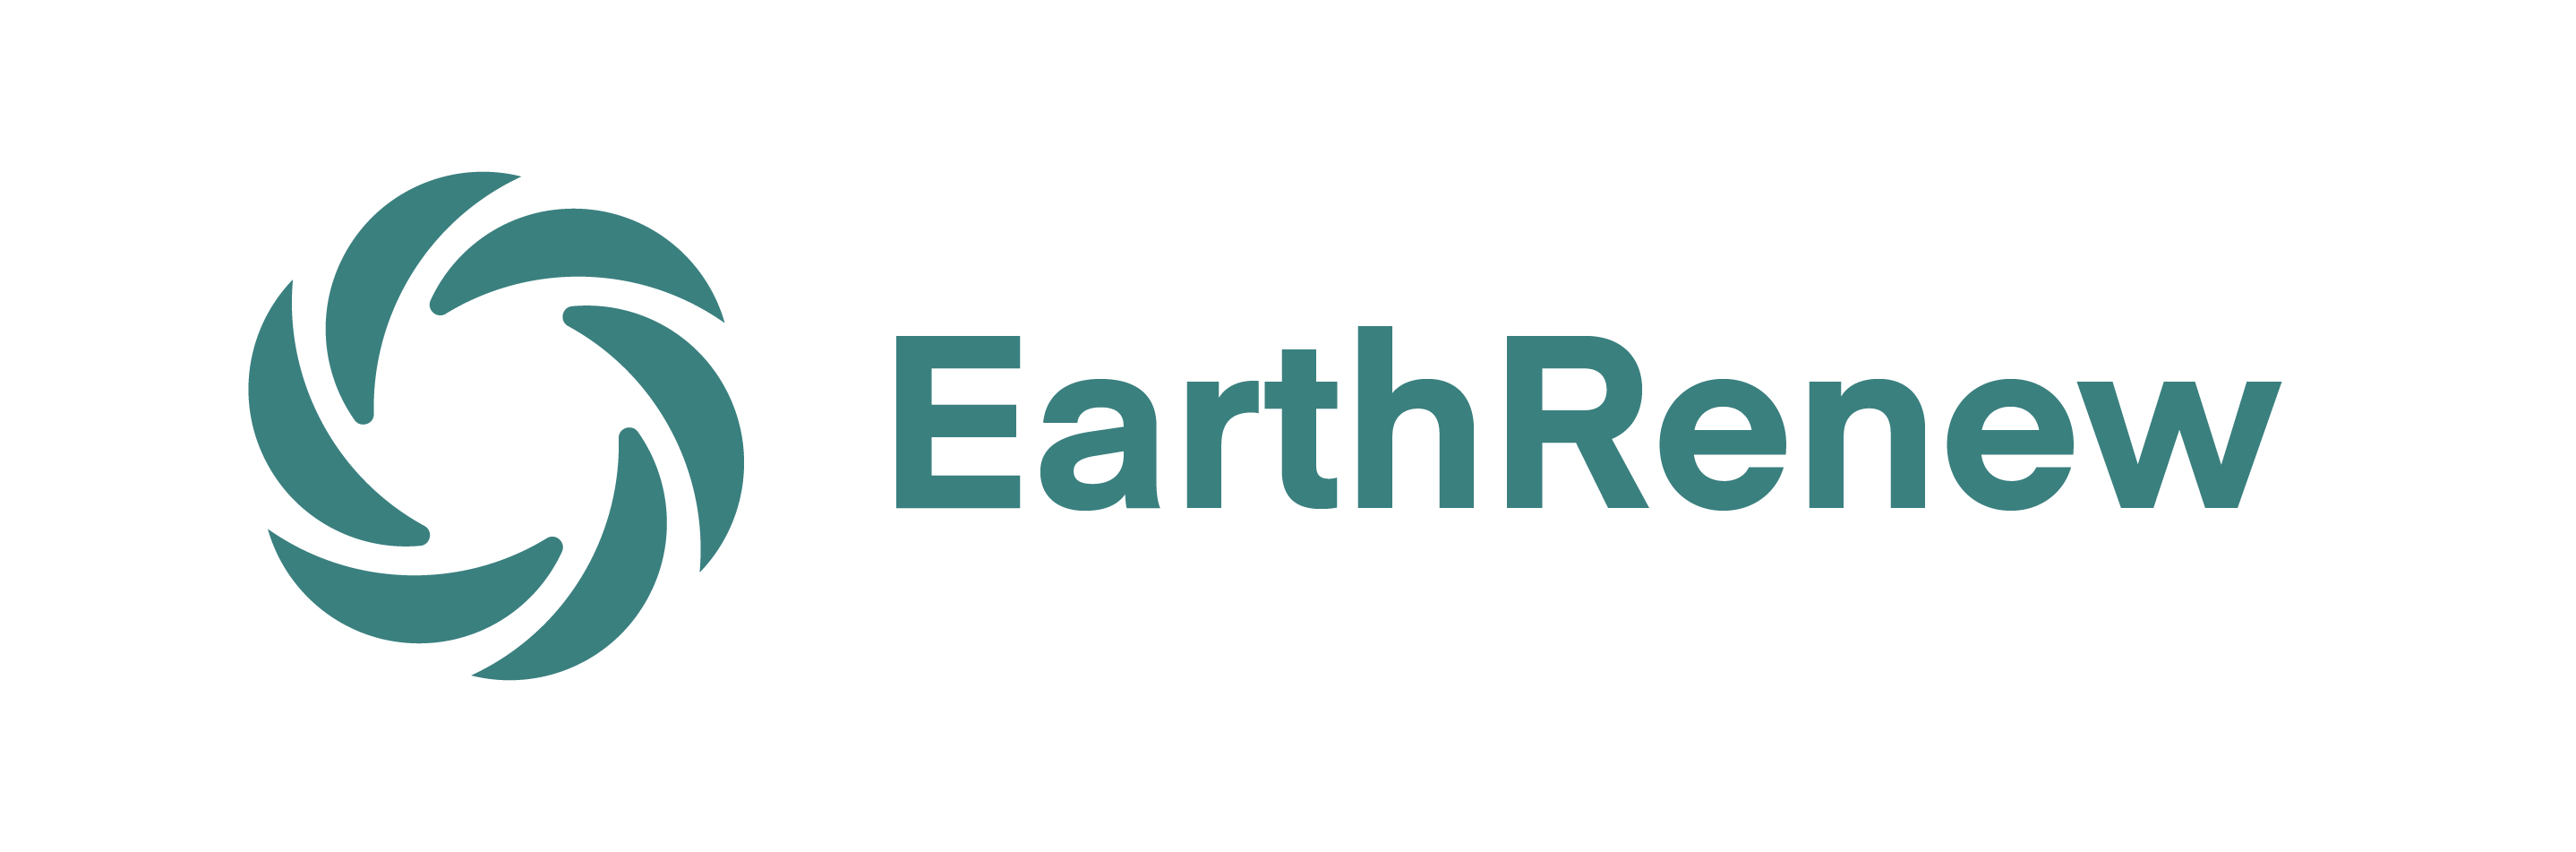 REPEAT -- EarthRenew Announces Lease Renewal and Feedstock Agreement for Its Flagship Facility Co-Located at Cattleland Feedyards' Site